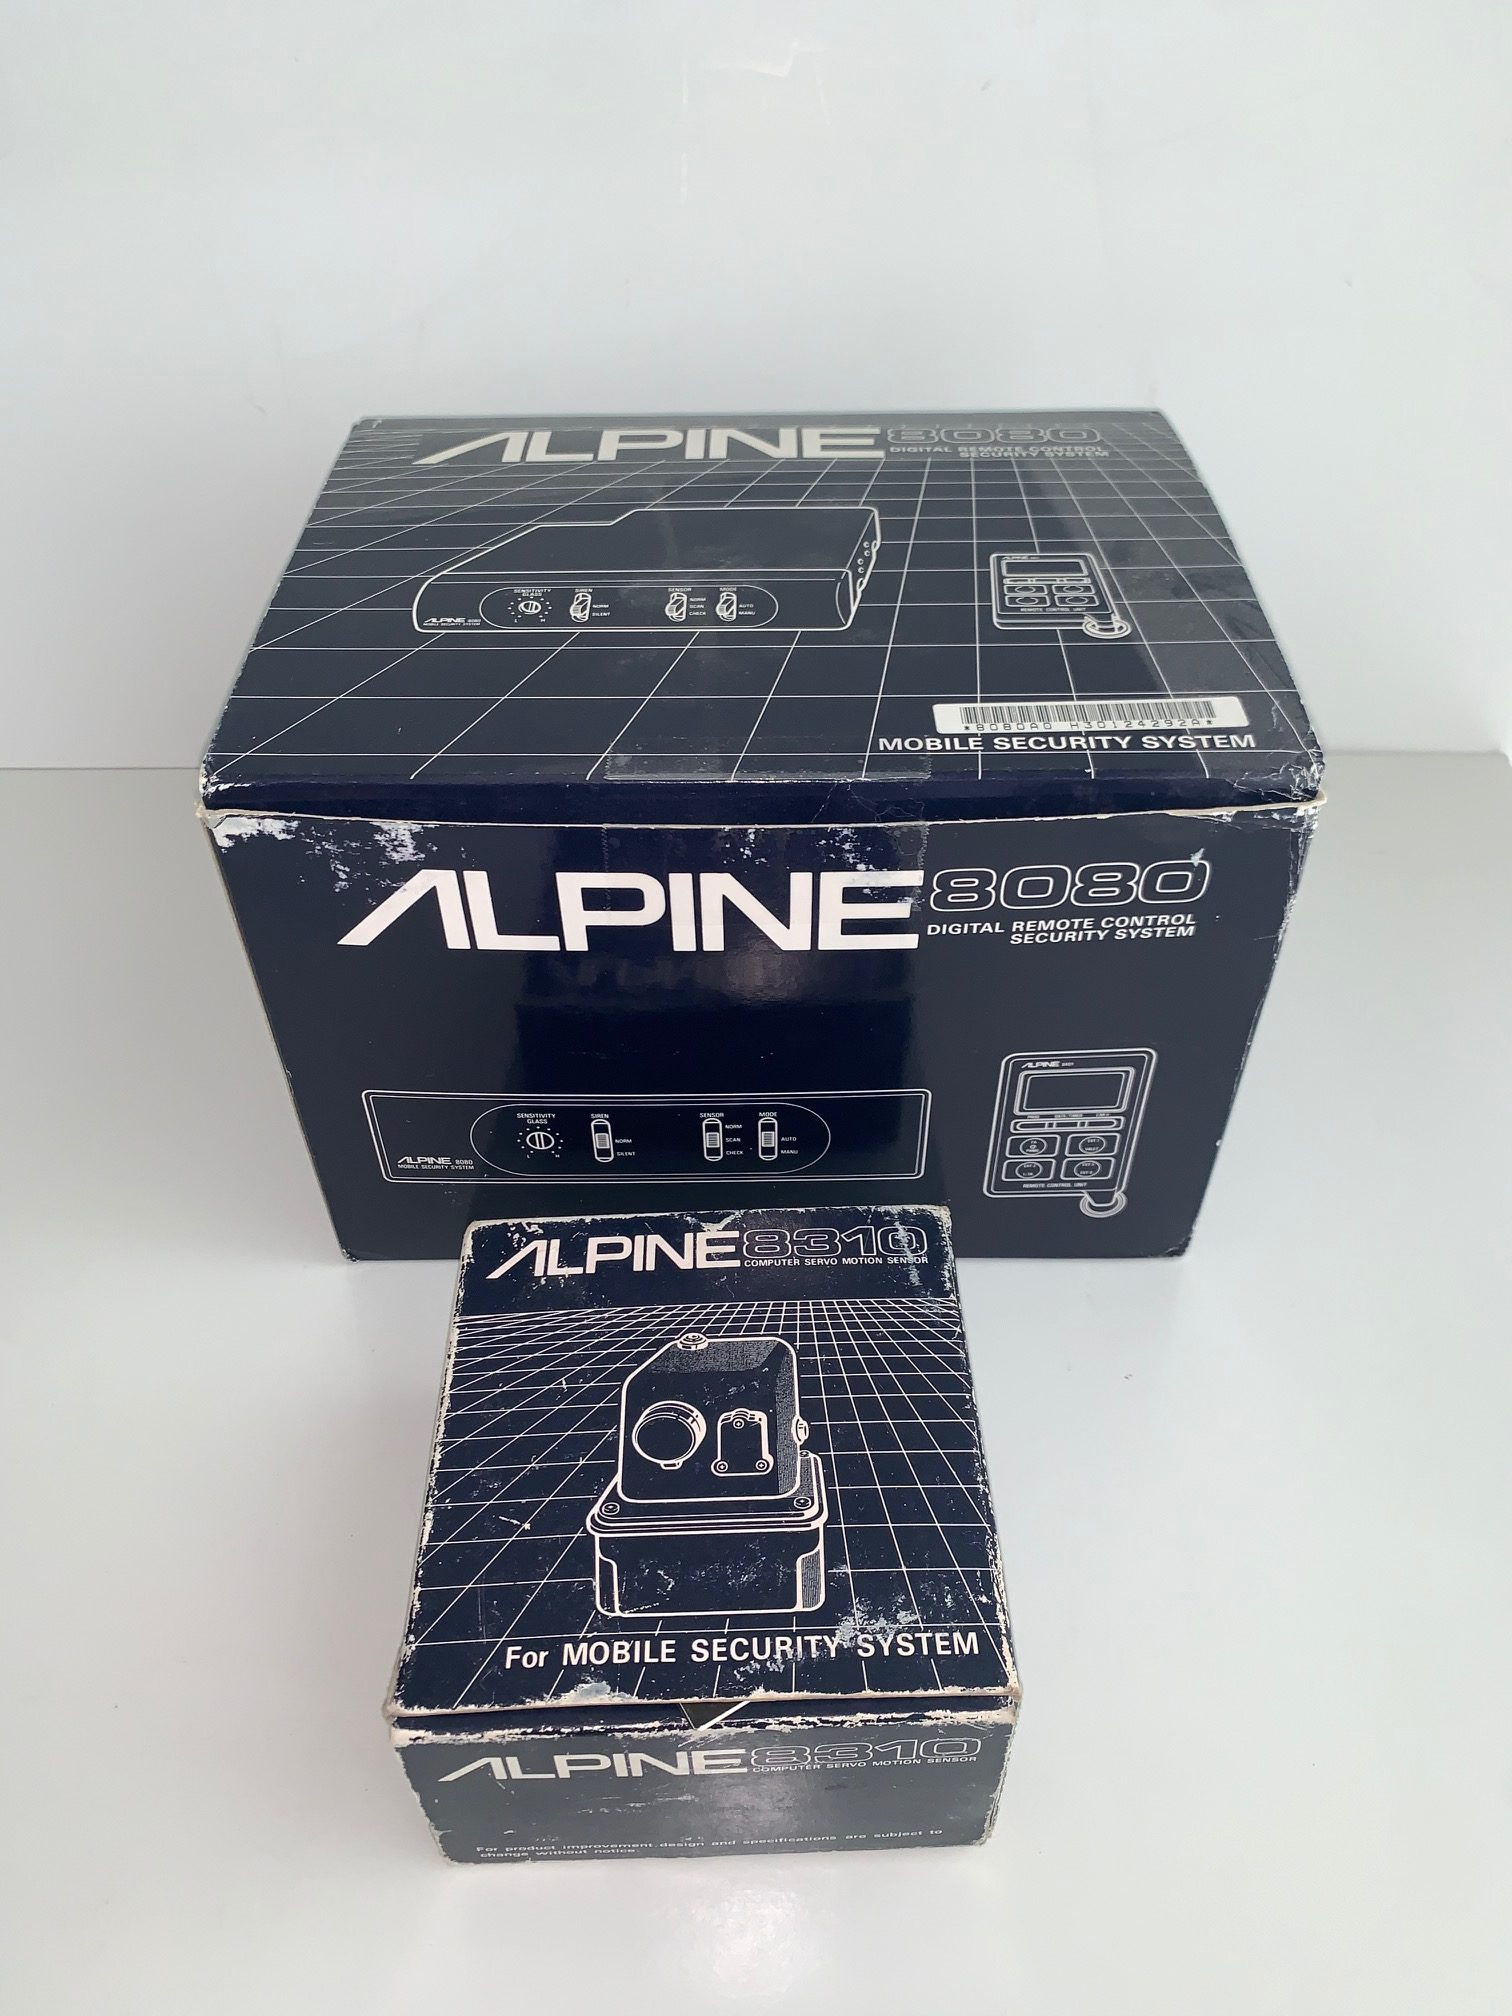 alpine 8080 alarm system   dirty old cars  dirty old cars